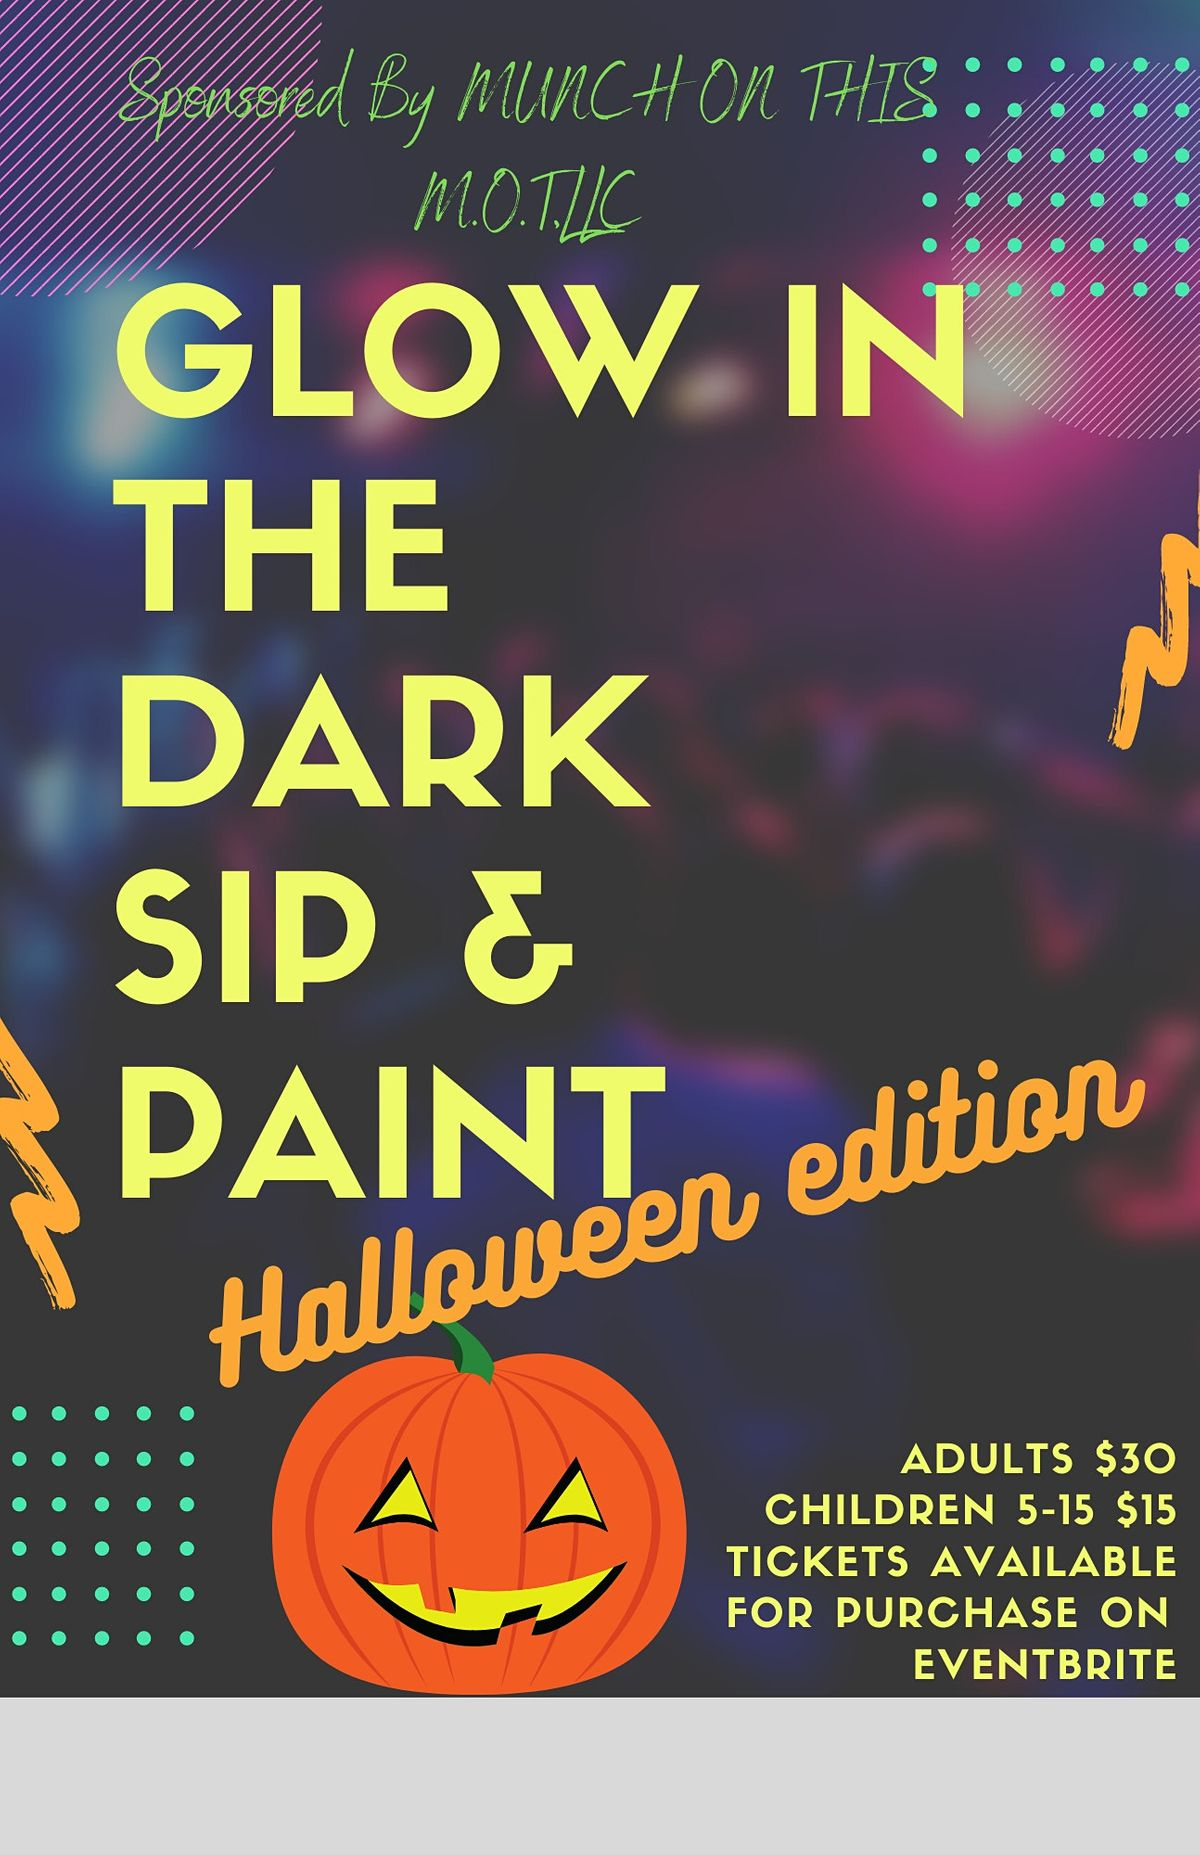 Glow in the dark sip and paint-Halloween edition